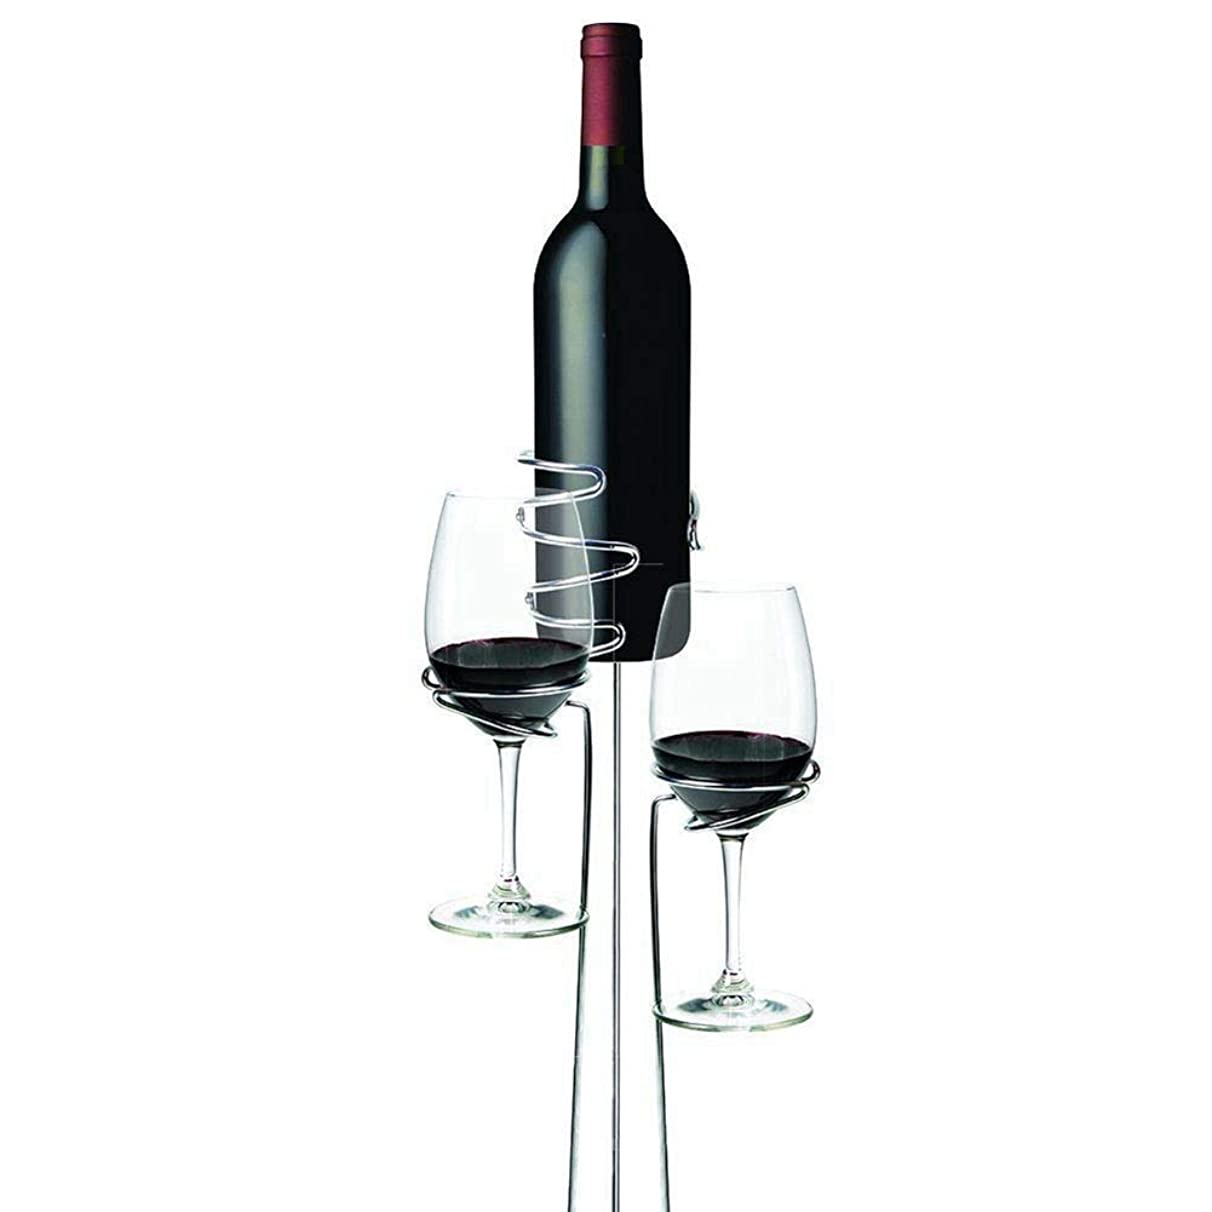 Wine Racks - 3pcs Set Outdoor Wine Glass Bottle Holder Stake Picnic Camping Stakes Rack Home Bar Cup Shelf - Under Decorative Cabinet Vertical Bamboo Hanging Silver Charts Hang Countertop Inside